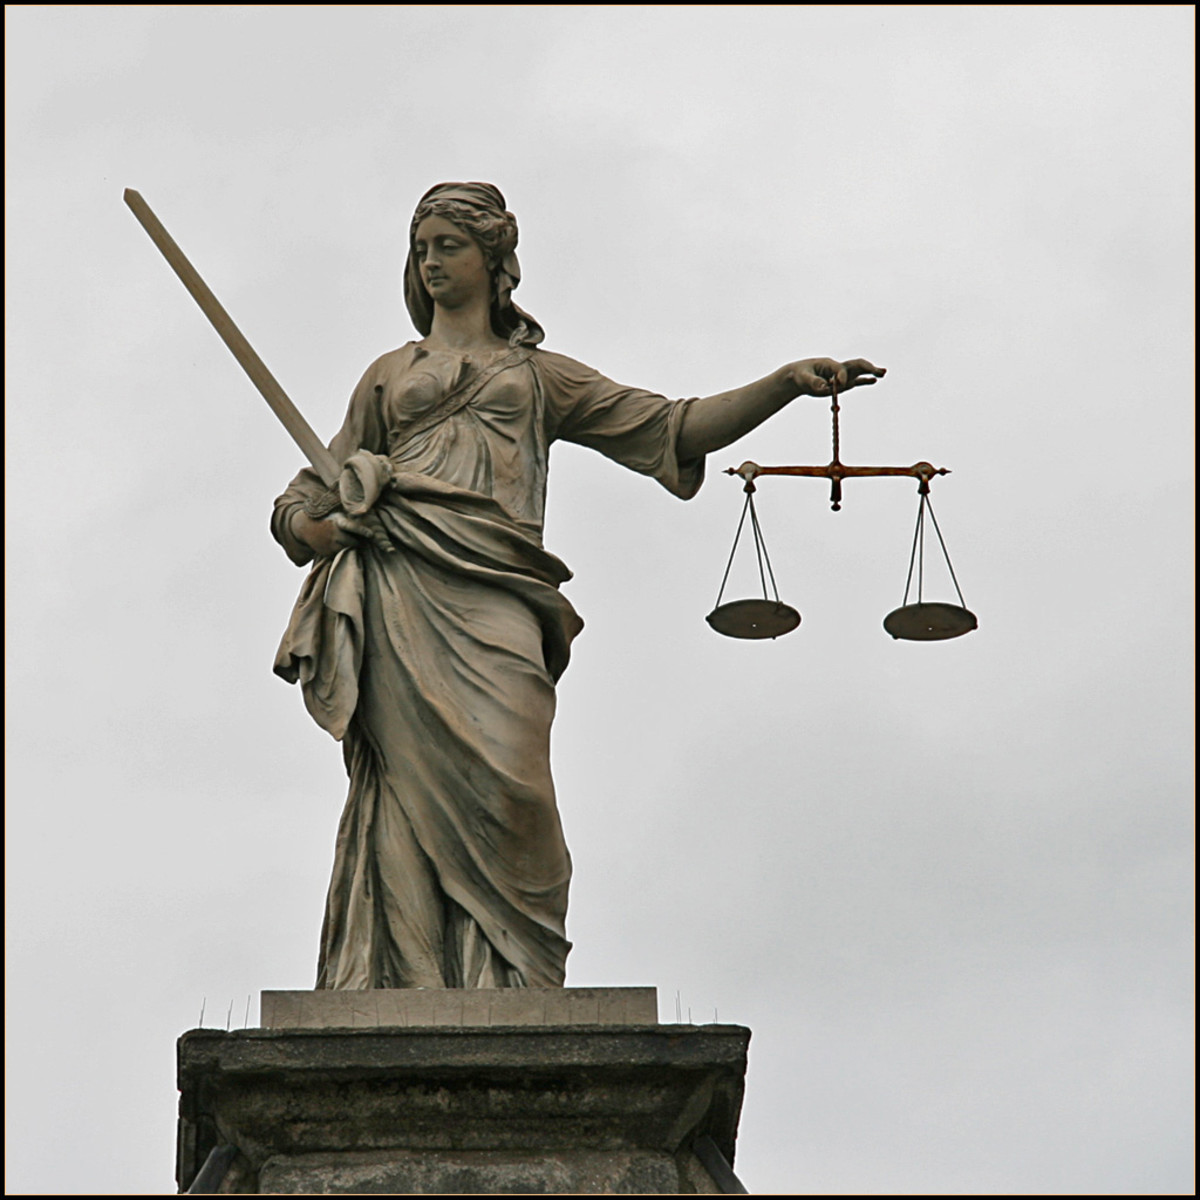 The Goddess Themis, goddess of justice, very similar to Nemesis